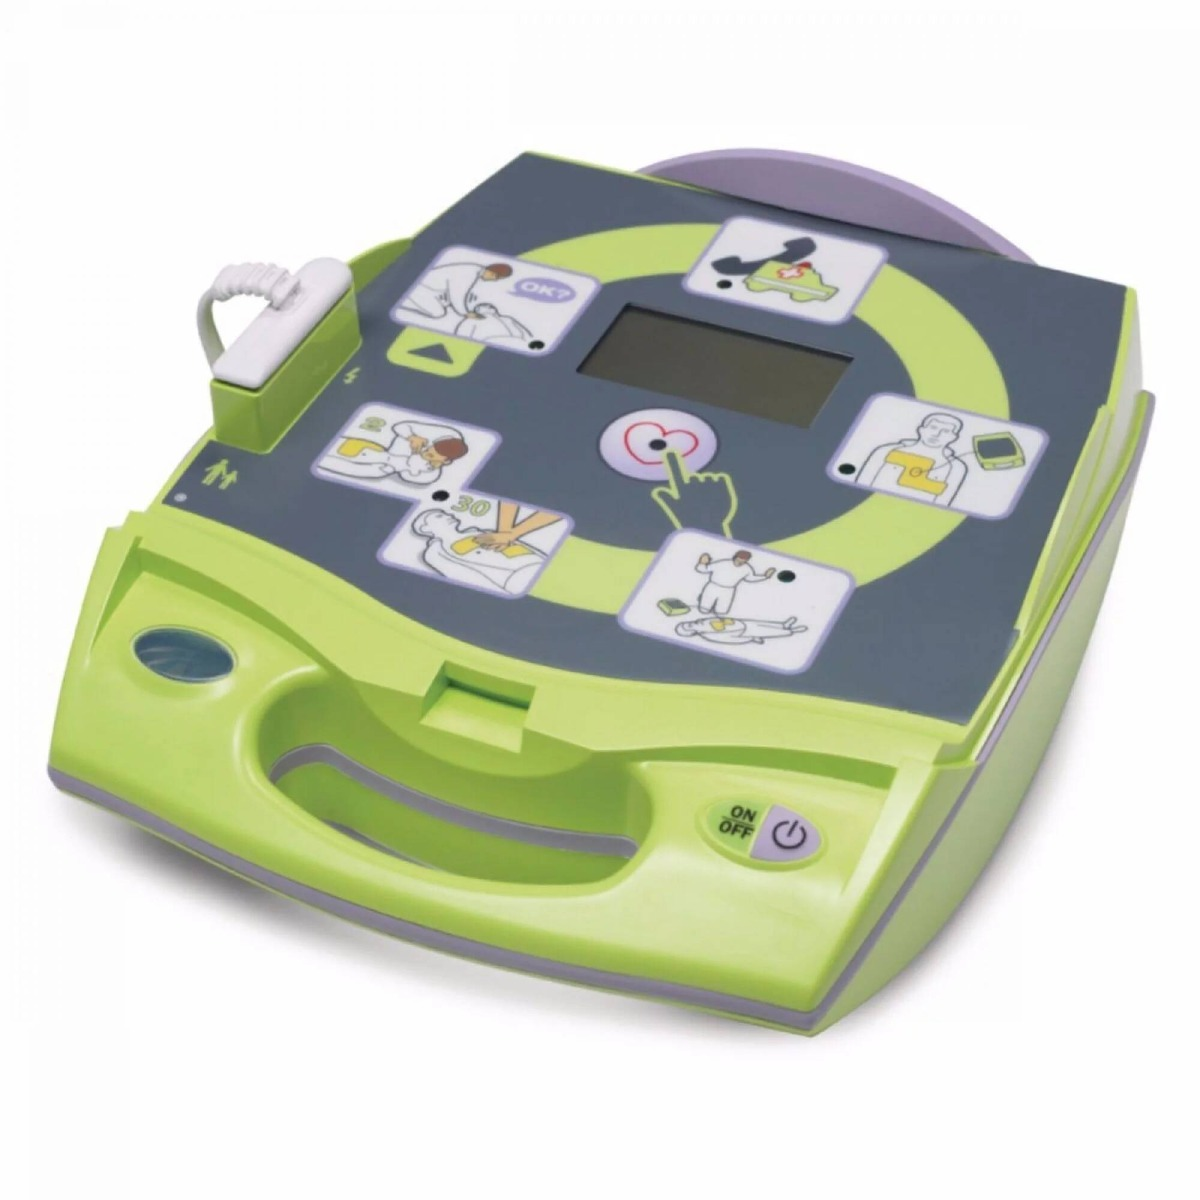 Zoll Automated External Defibrillator Plus Package